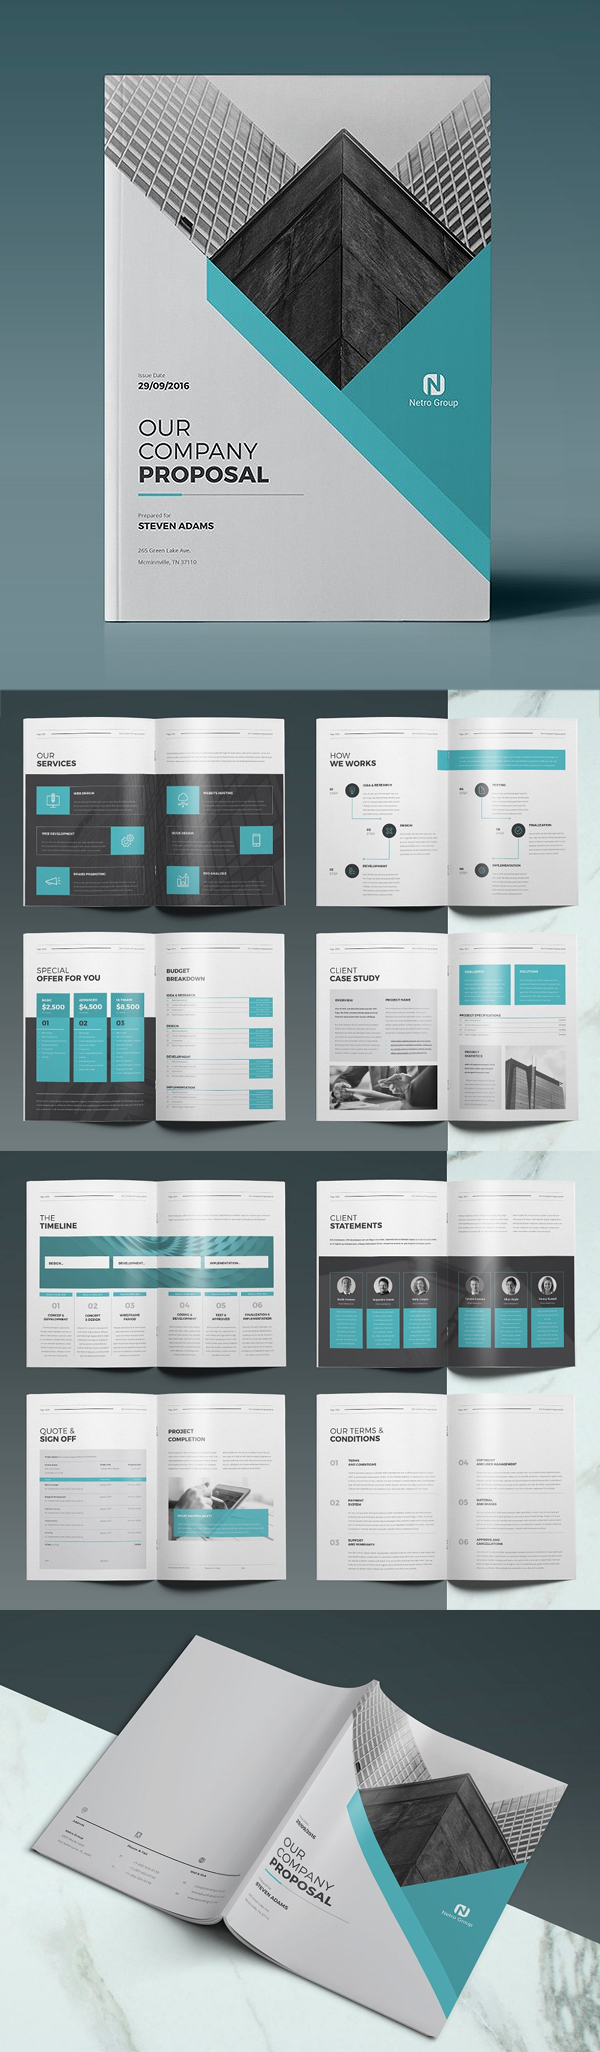 Professional Business Proposal Templates Design - 4